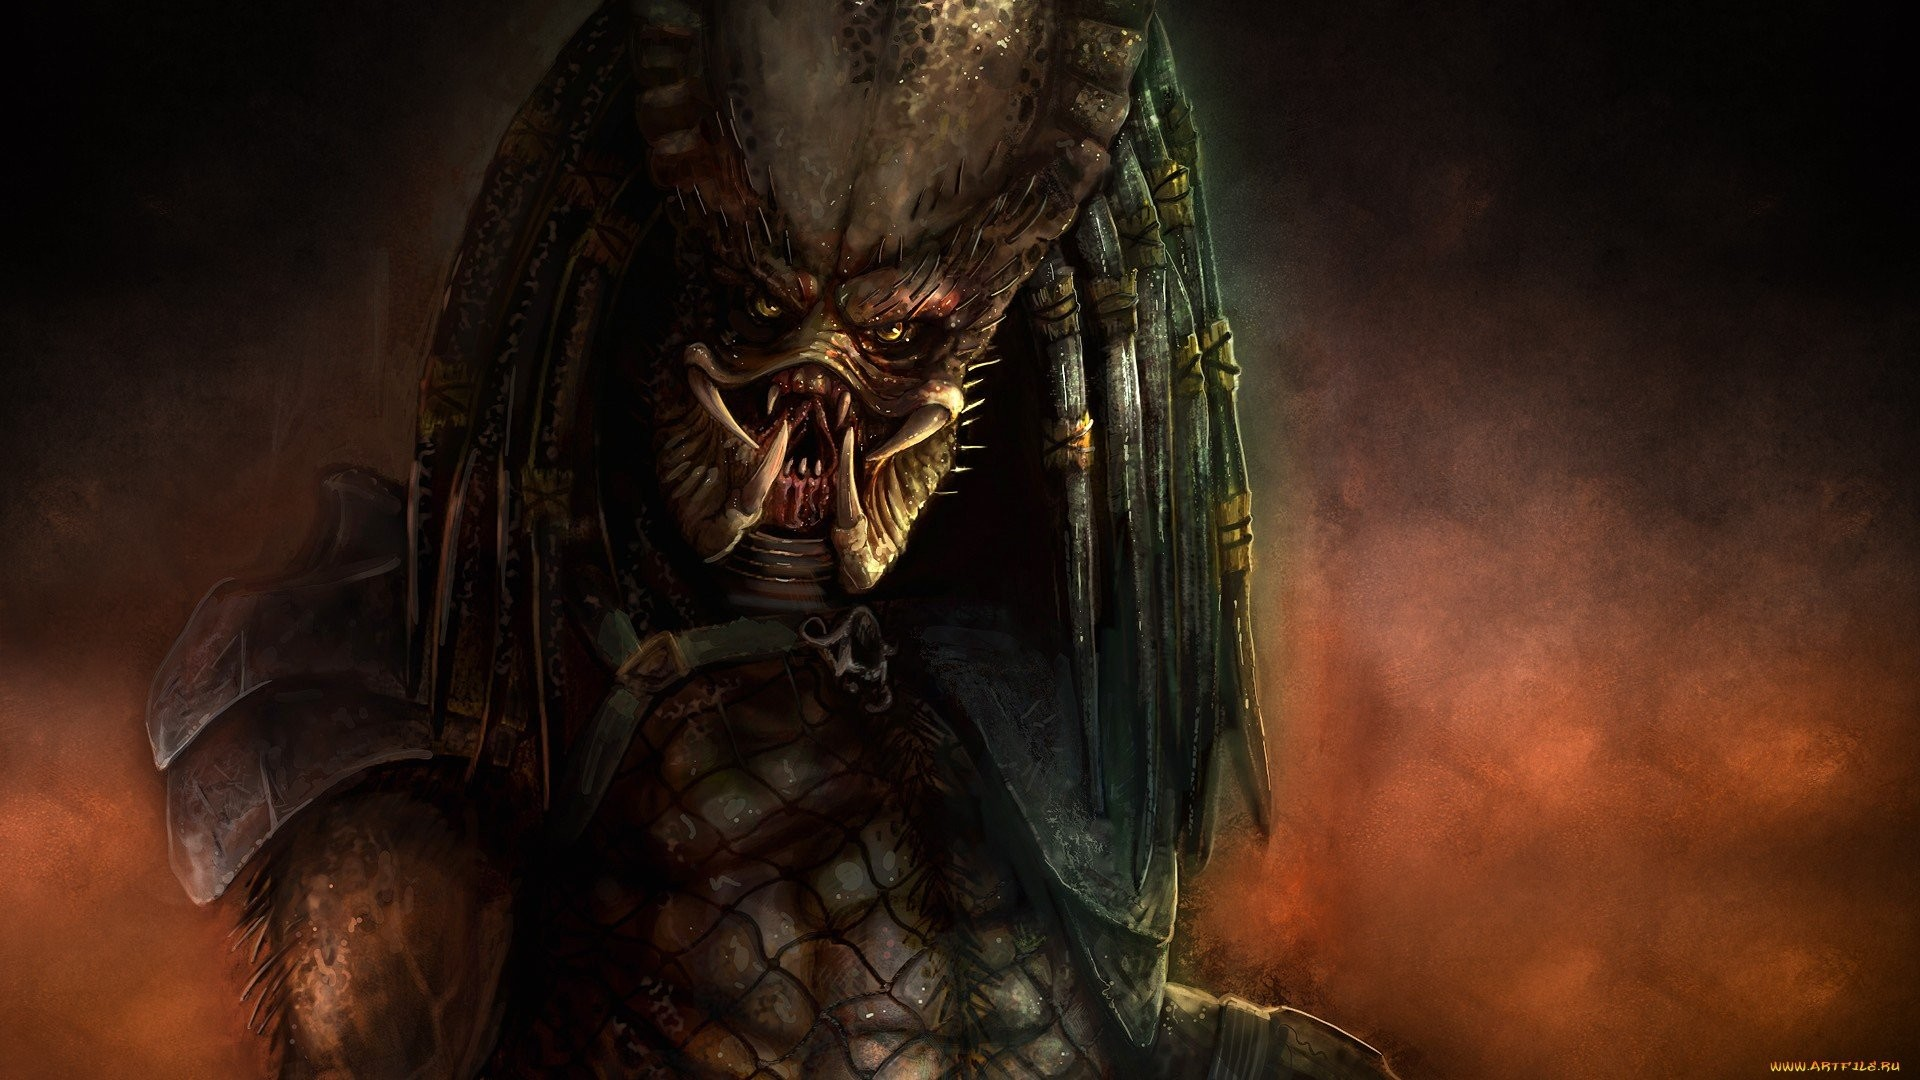 1920x1080 HD Predator Wallpaper